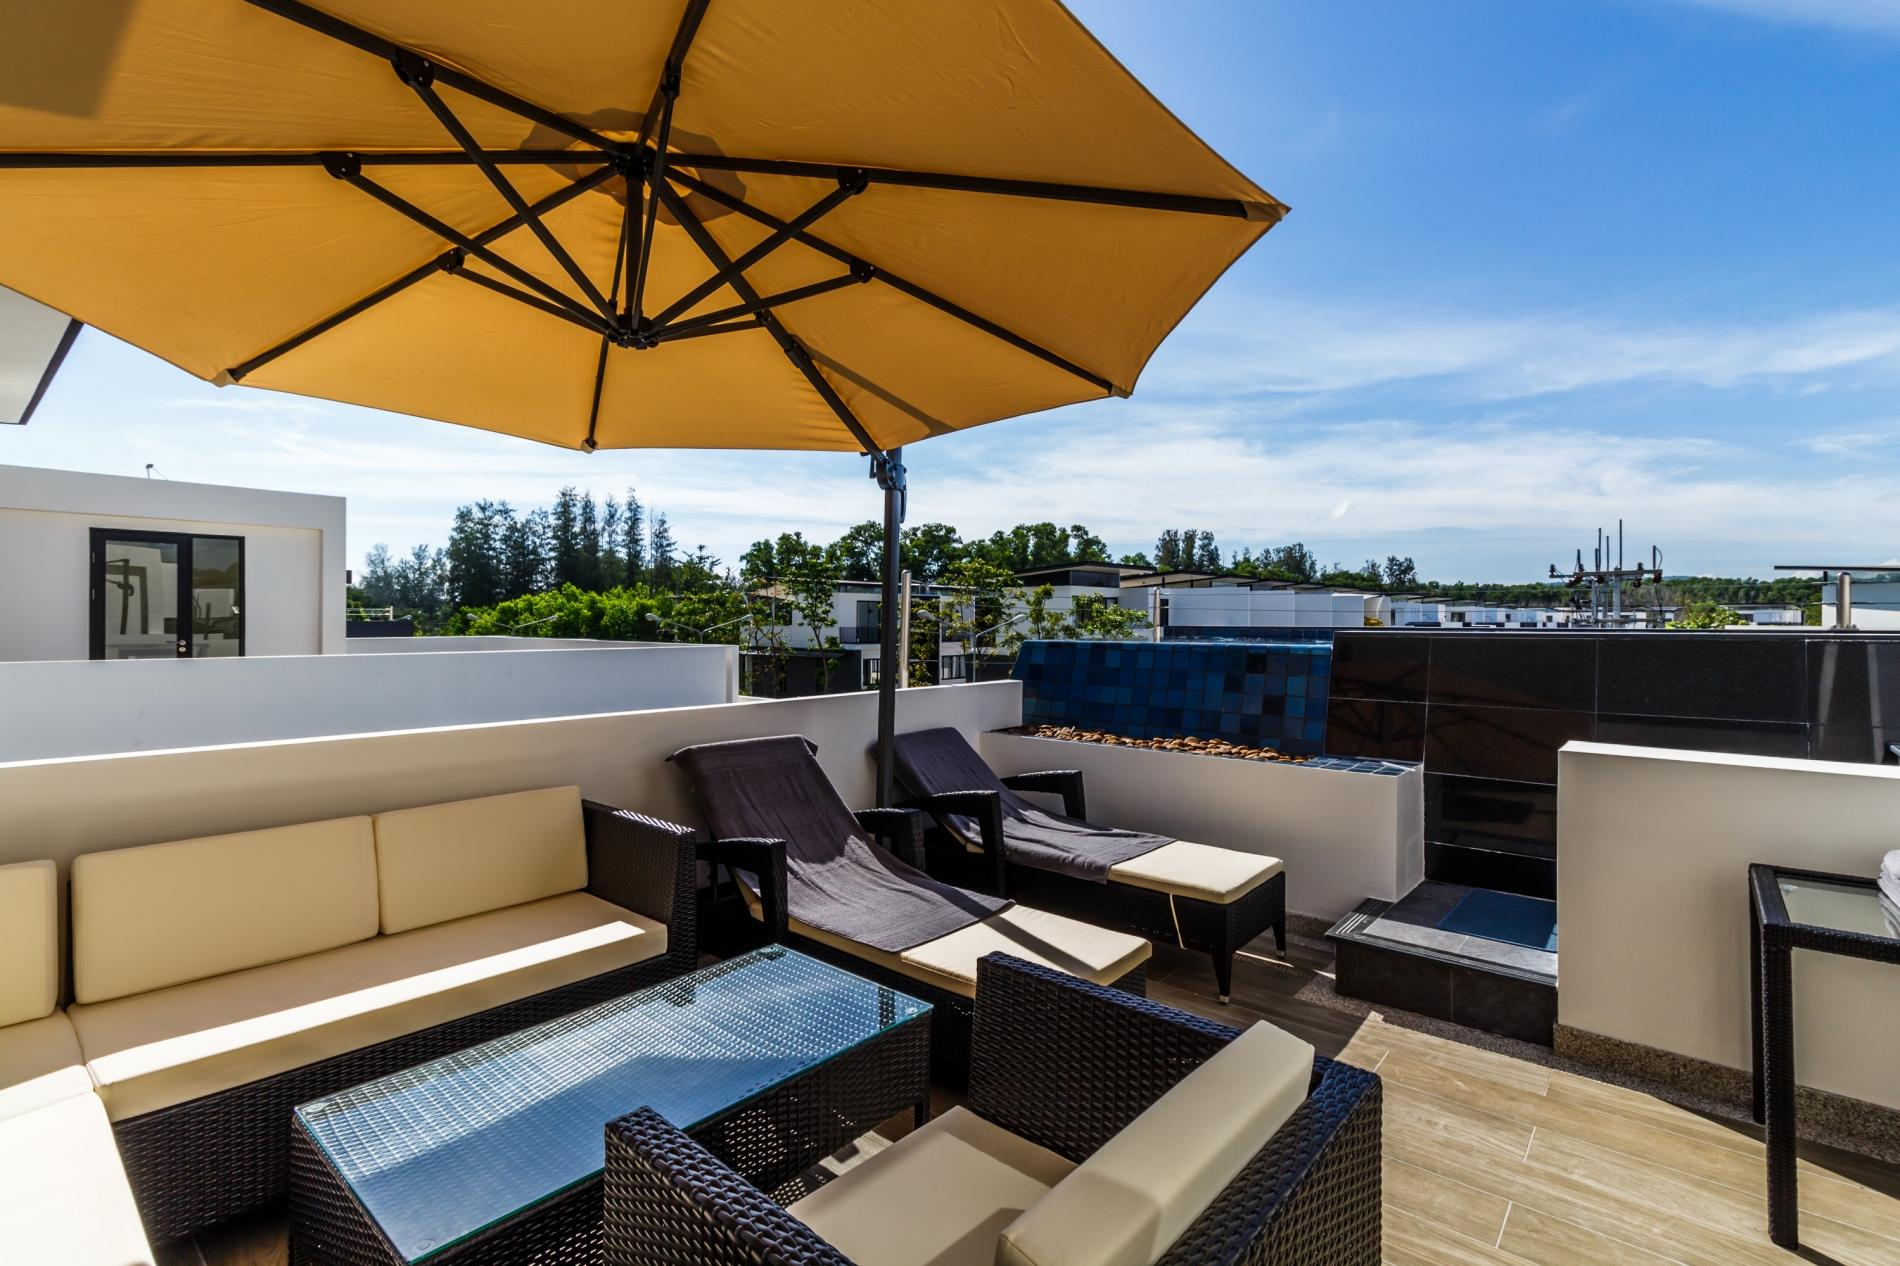 Apartment LP101 - Private rooftop pool villa in Laguna for 9 people  near restaurants and shops photo 20176188